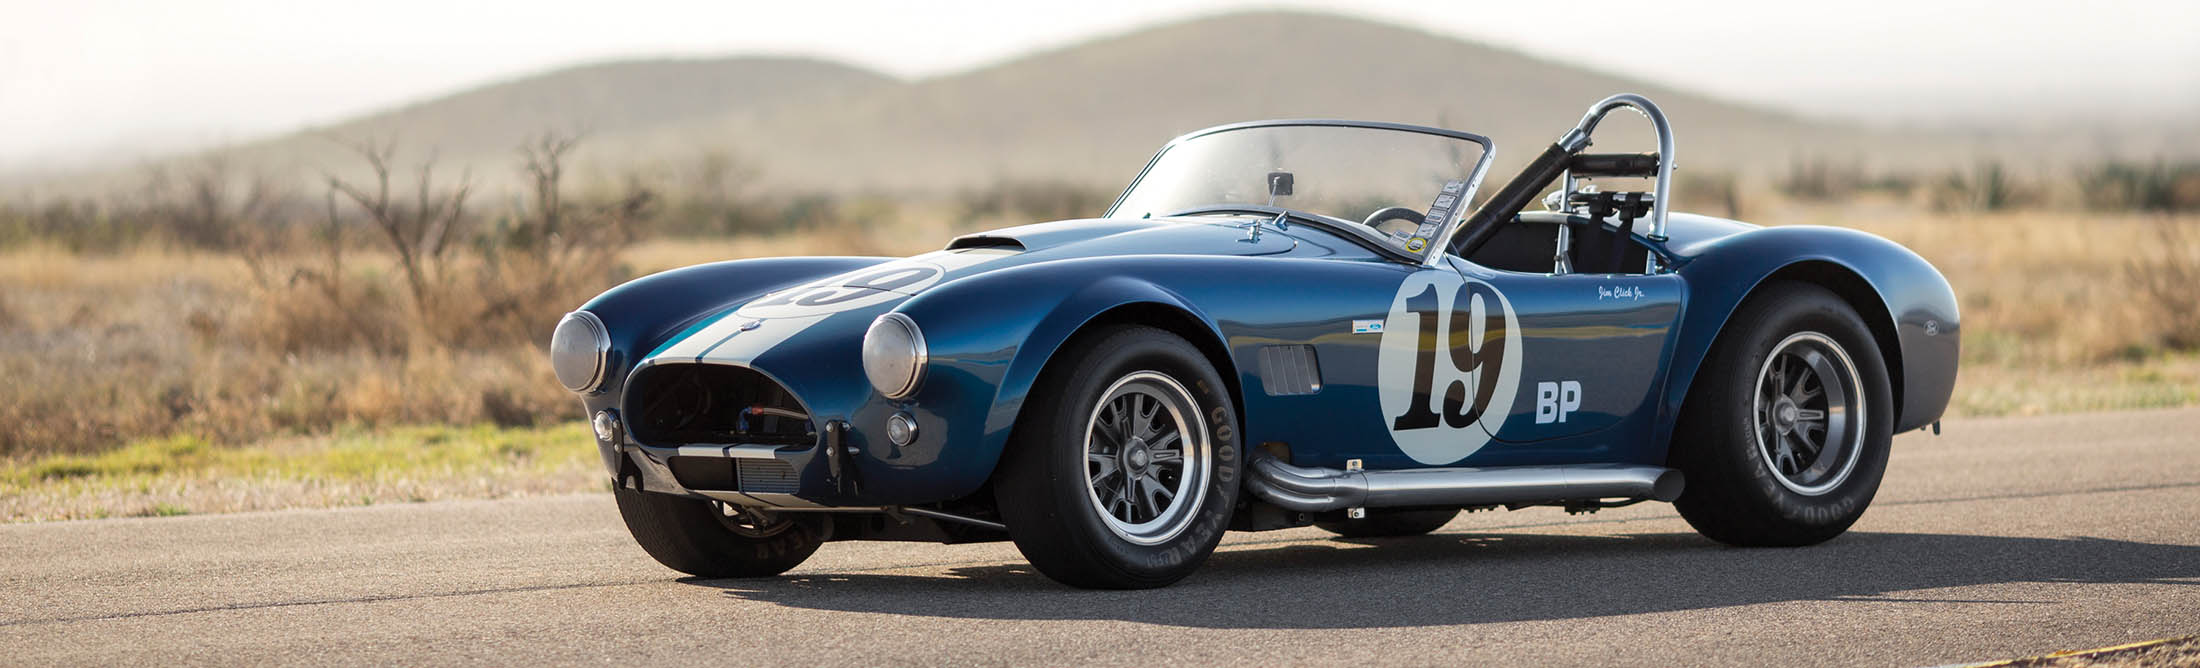 How to Consign a Million-Dollar Vintage Car, From Garage to Gavel ...